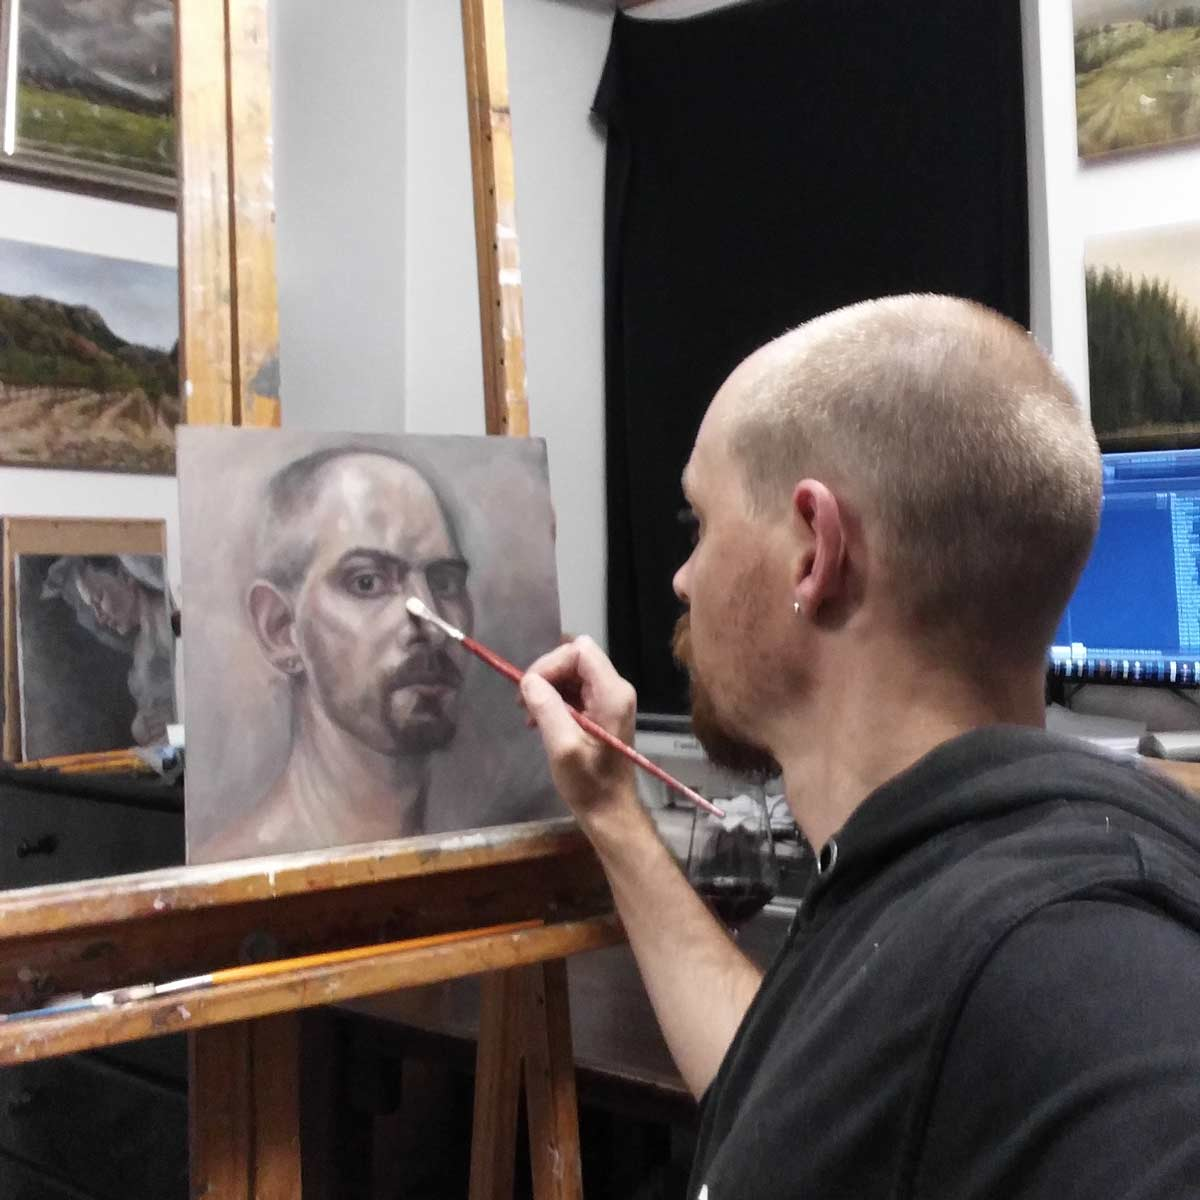 Artist painting self portrait